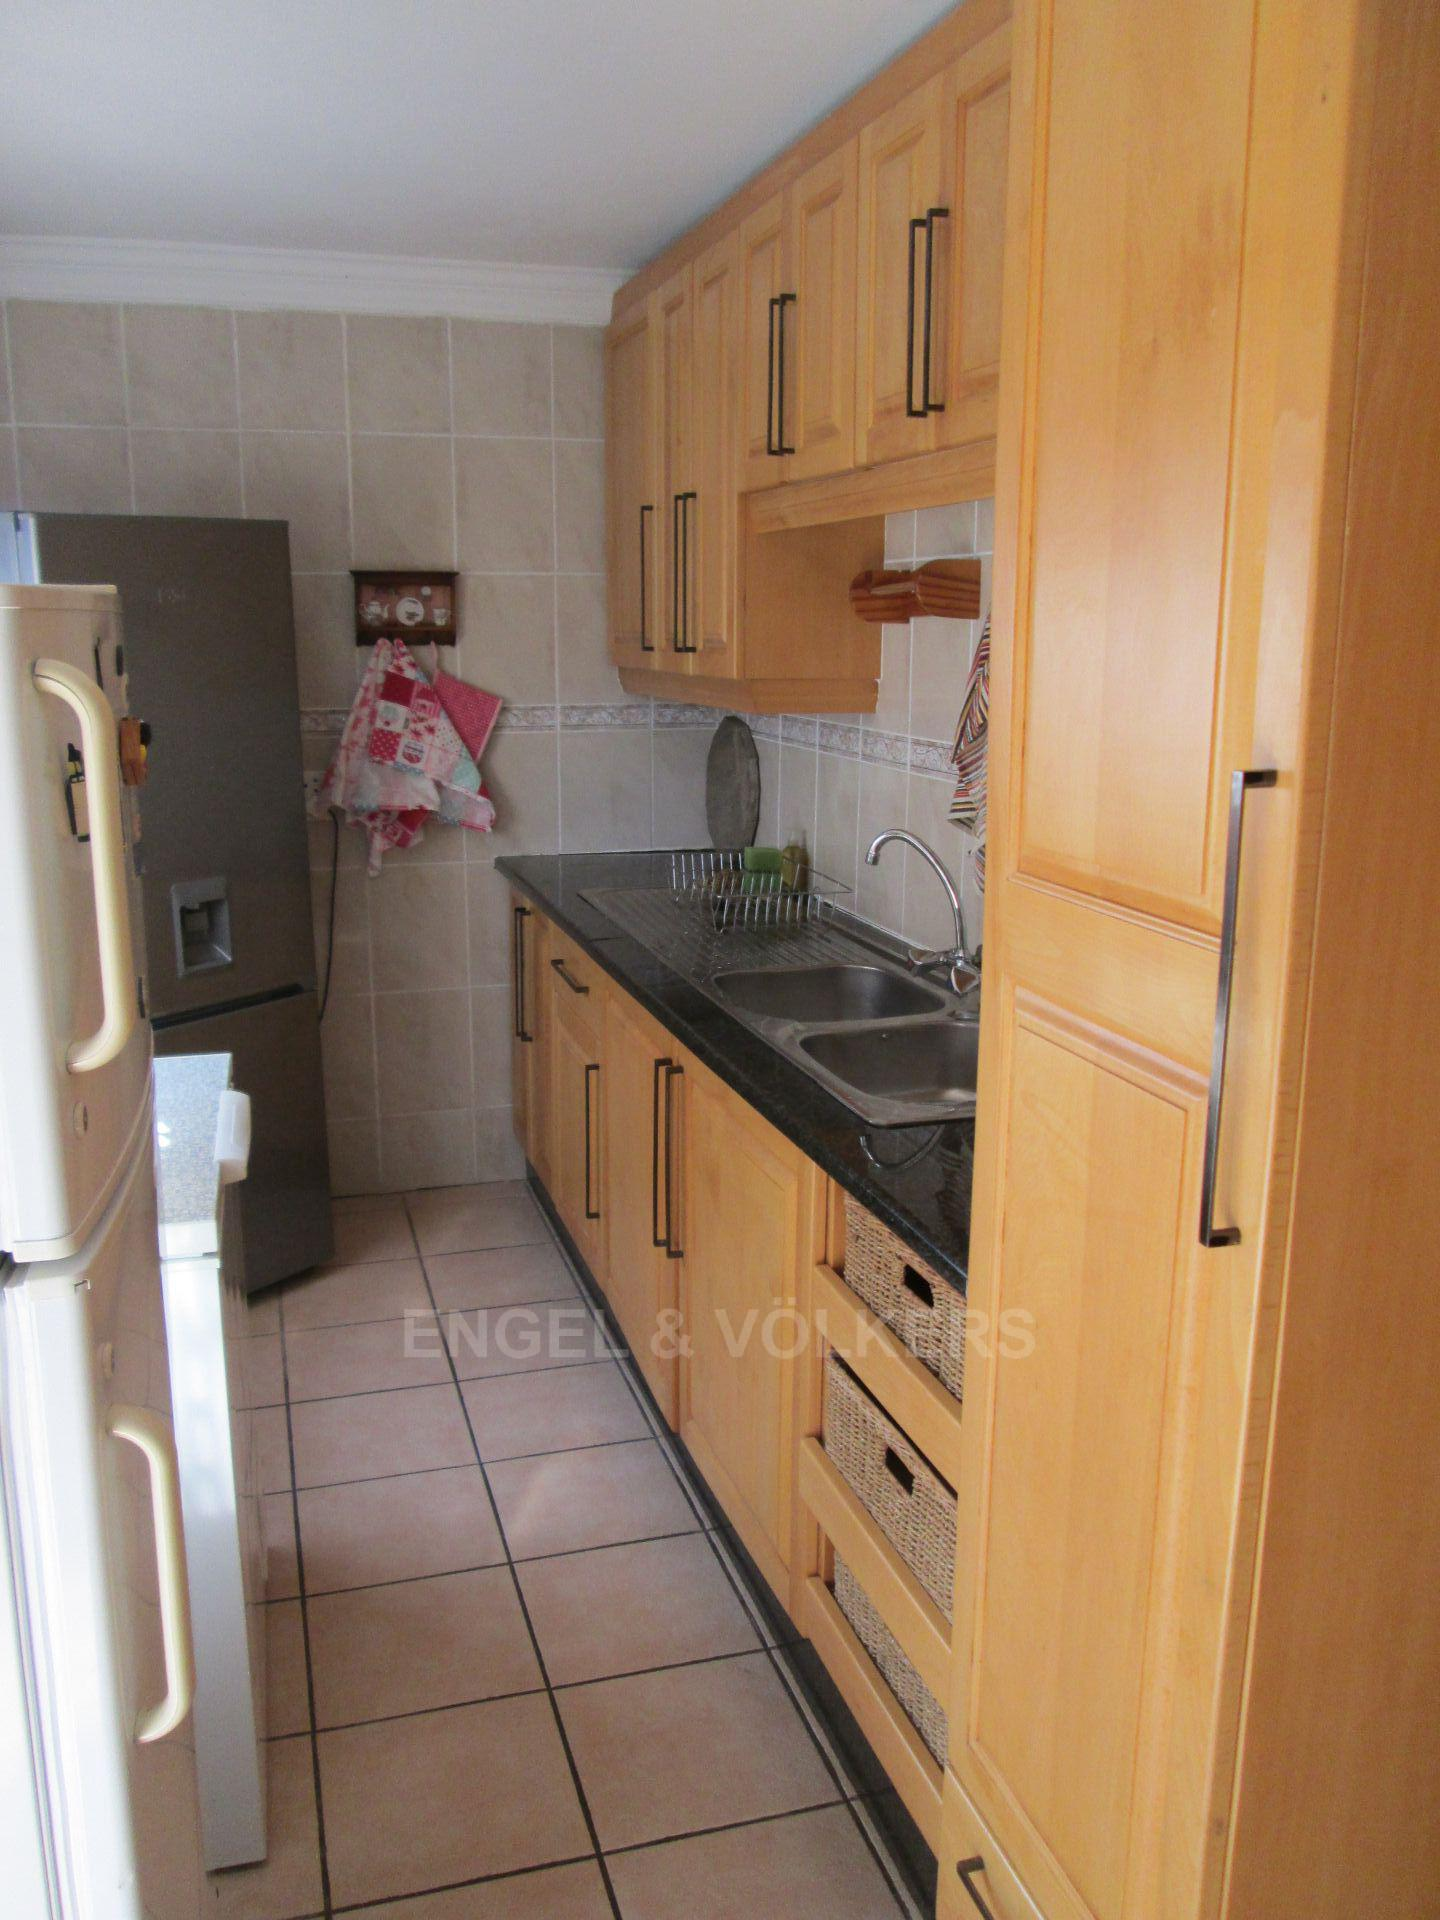 Southbroom property for sale. Ref No: 13502158. Picture no 5